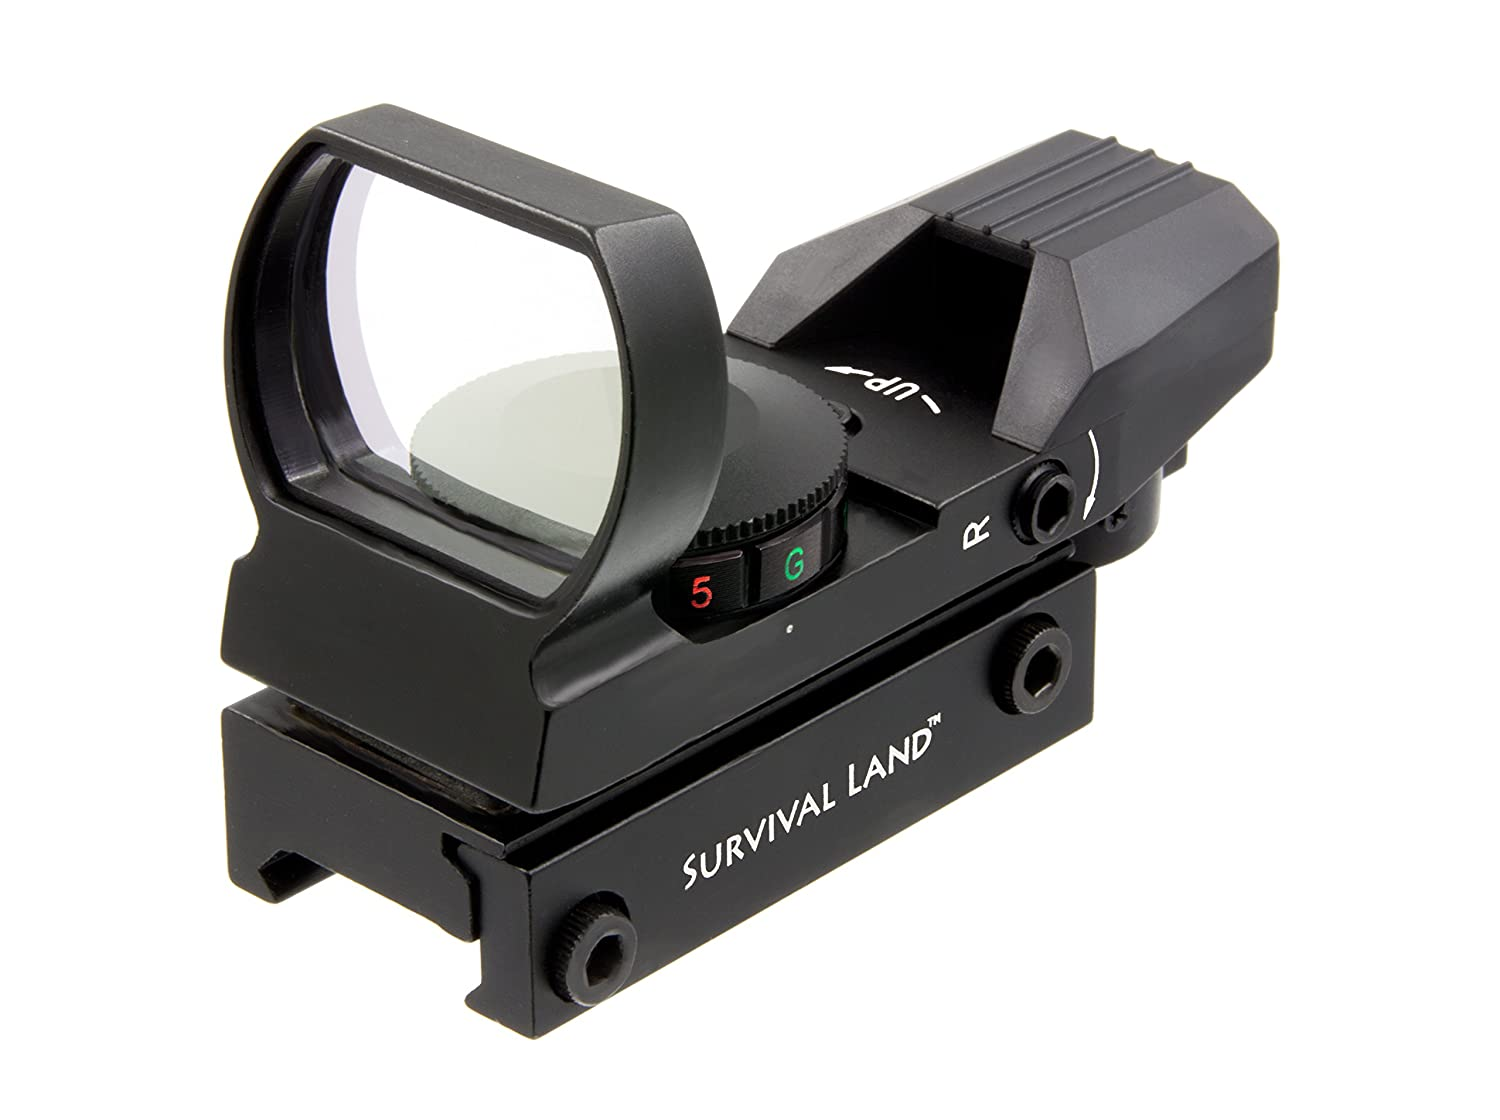 Survival Land Reflex Sight with 4 Selectable Red or Green Retical Patterns